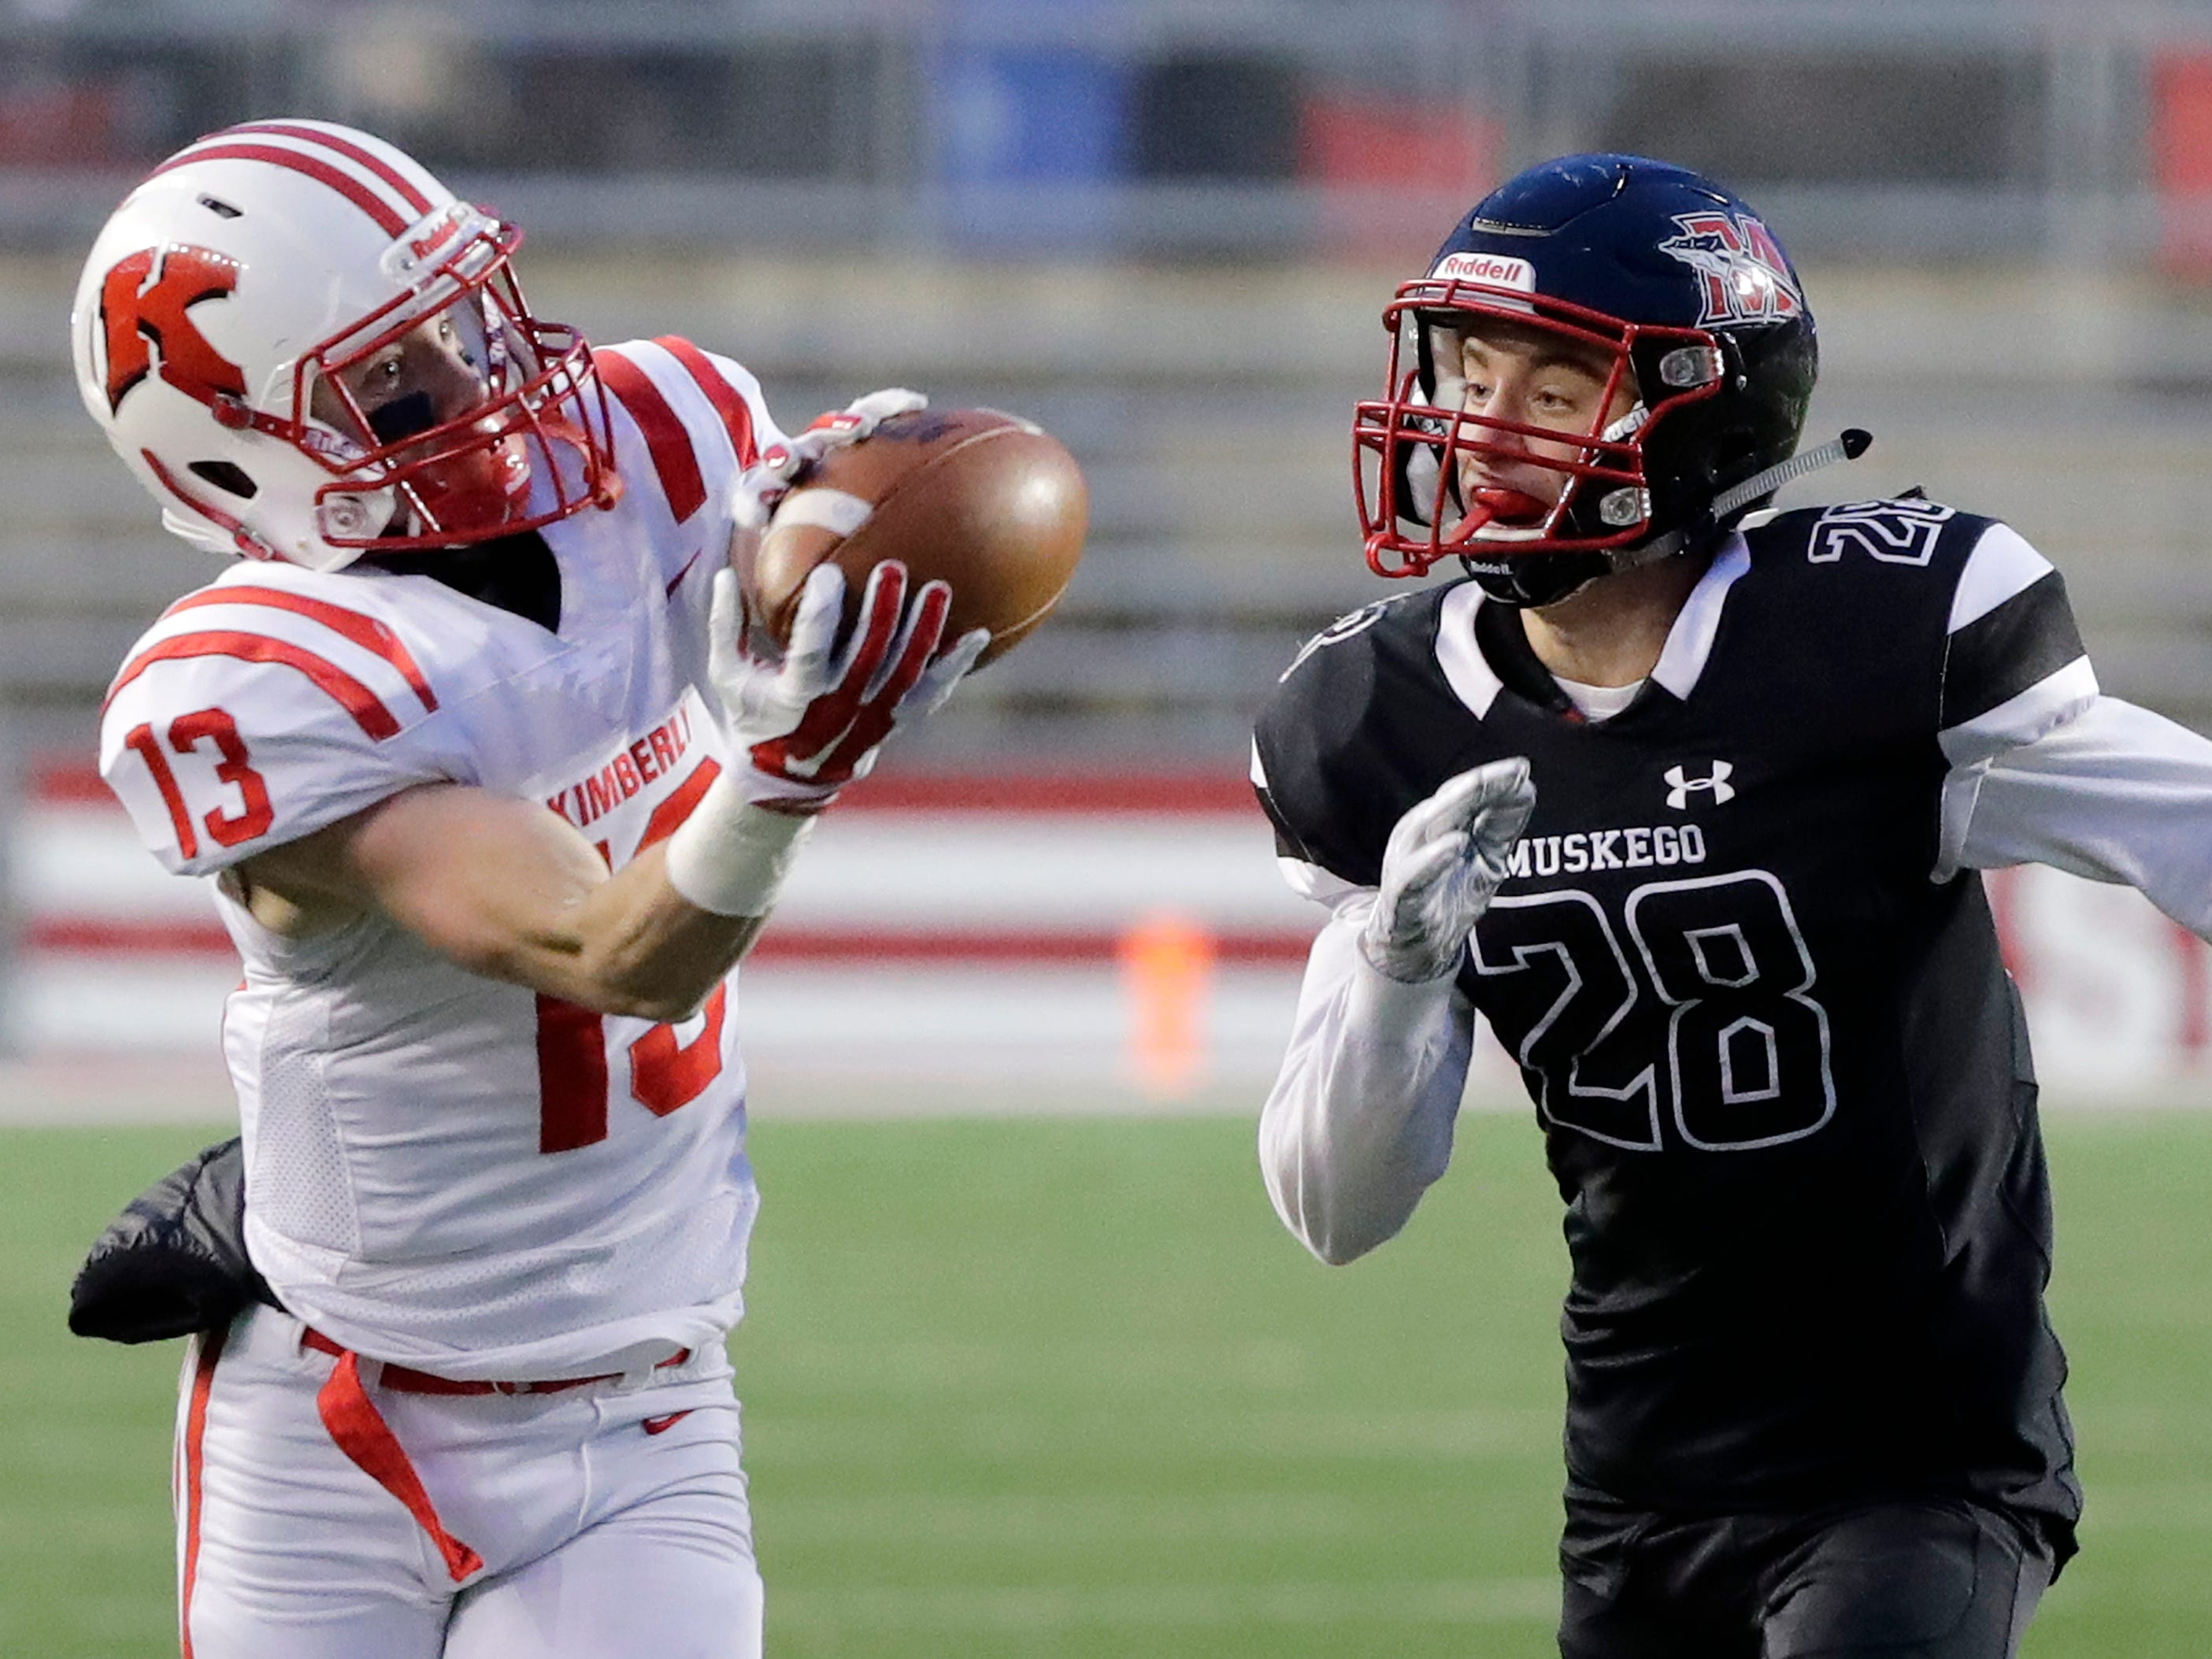 Kimberly's Zach Lechnir (13) catches a pass against the coverage of Muskego's Mitchel Kudronowicz (28) in the WIAA Division 1 championship game at Camp Randall Stadium on Friday, November 16, 2018 in Madison, Wis.